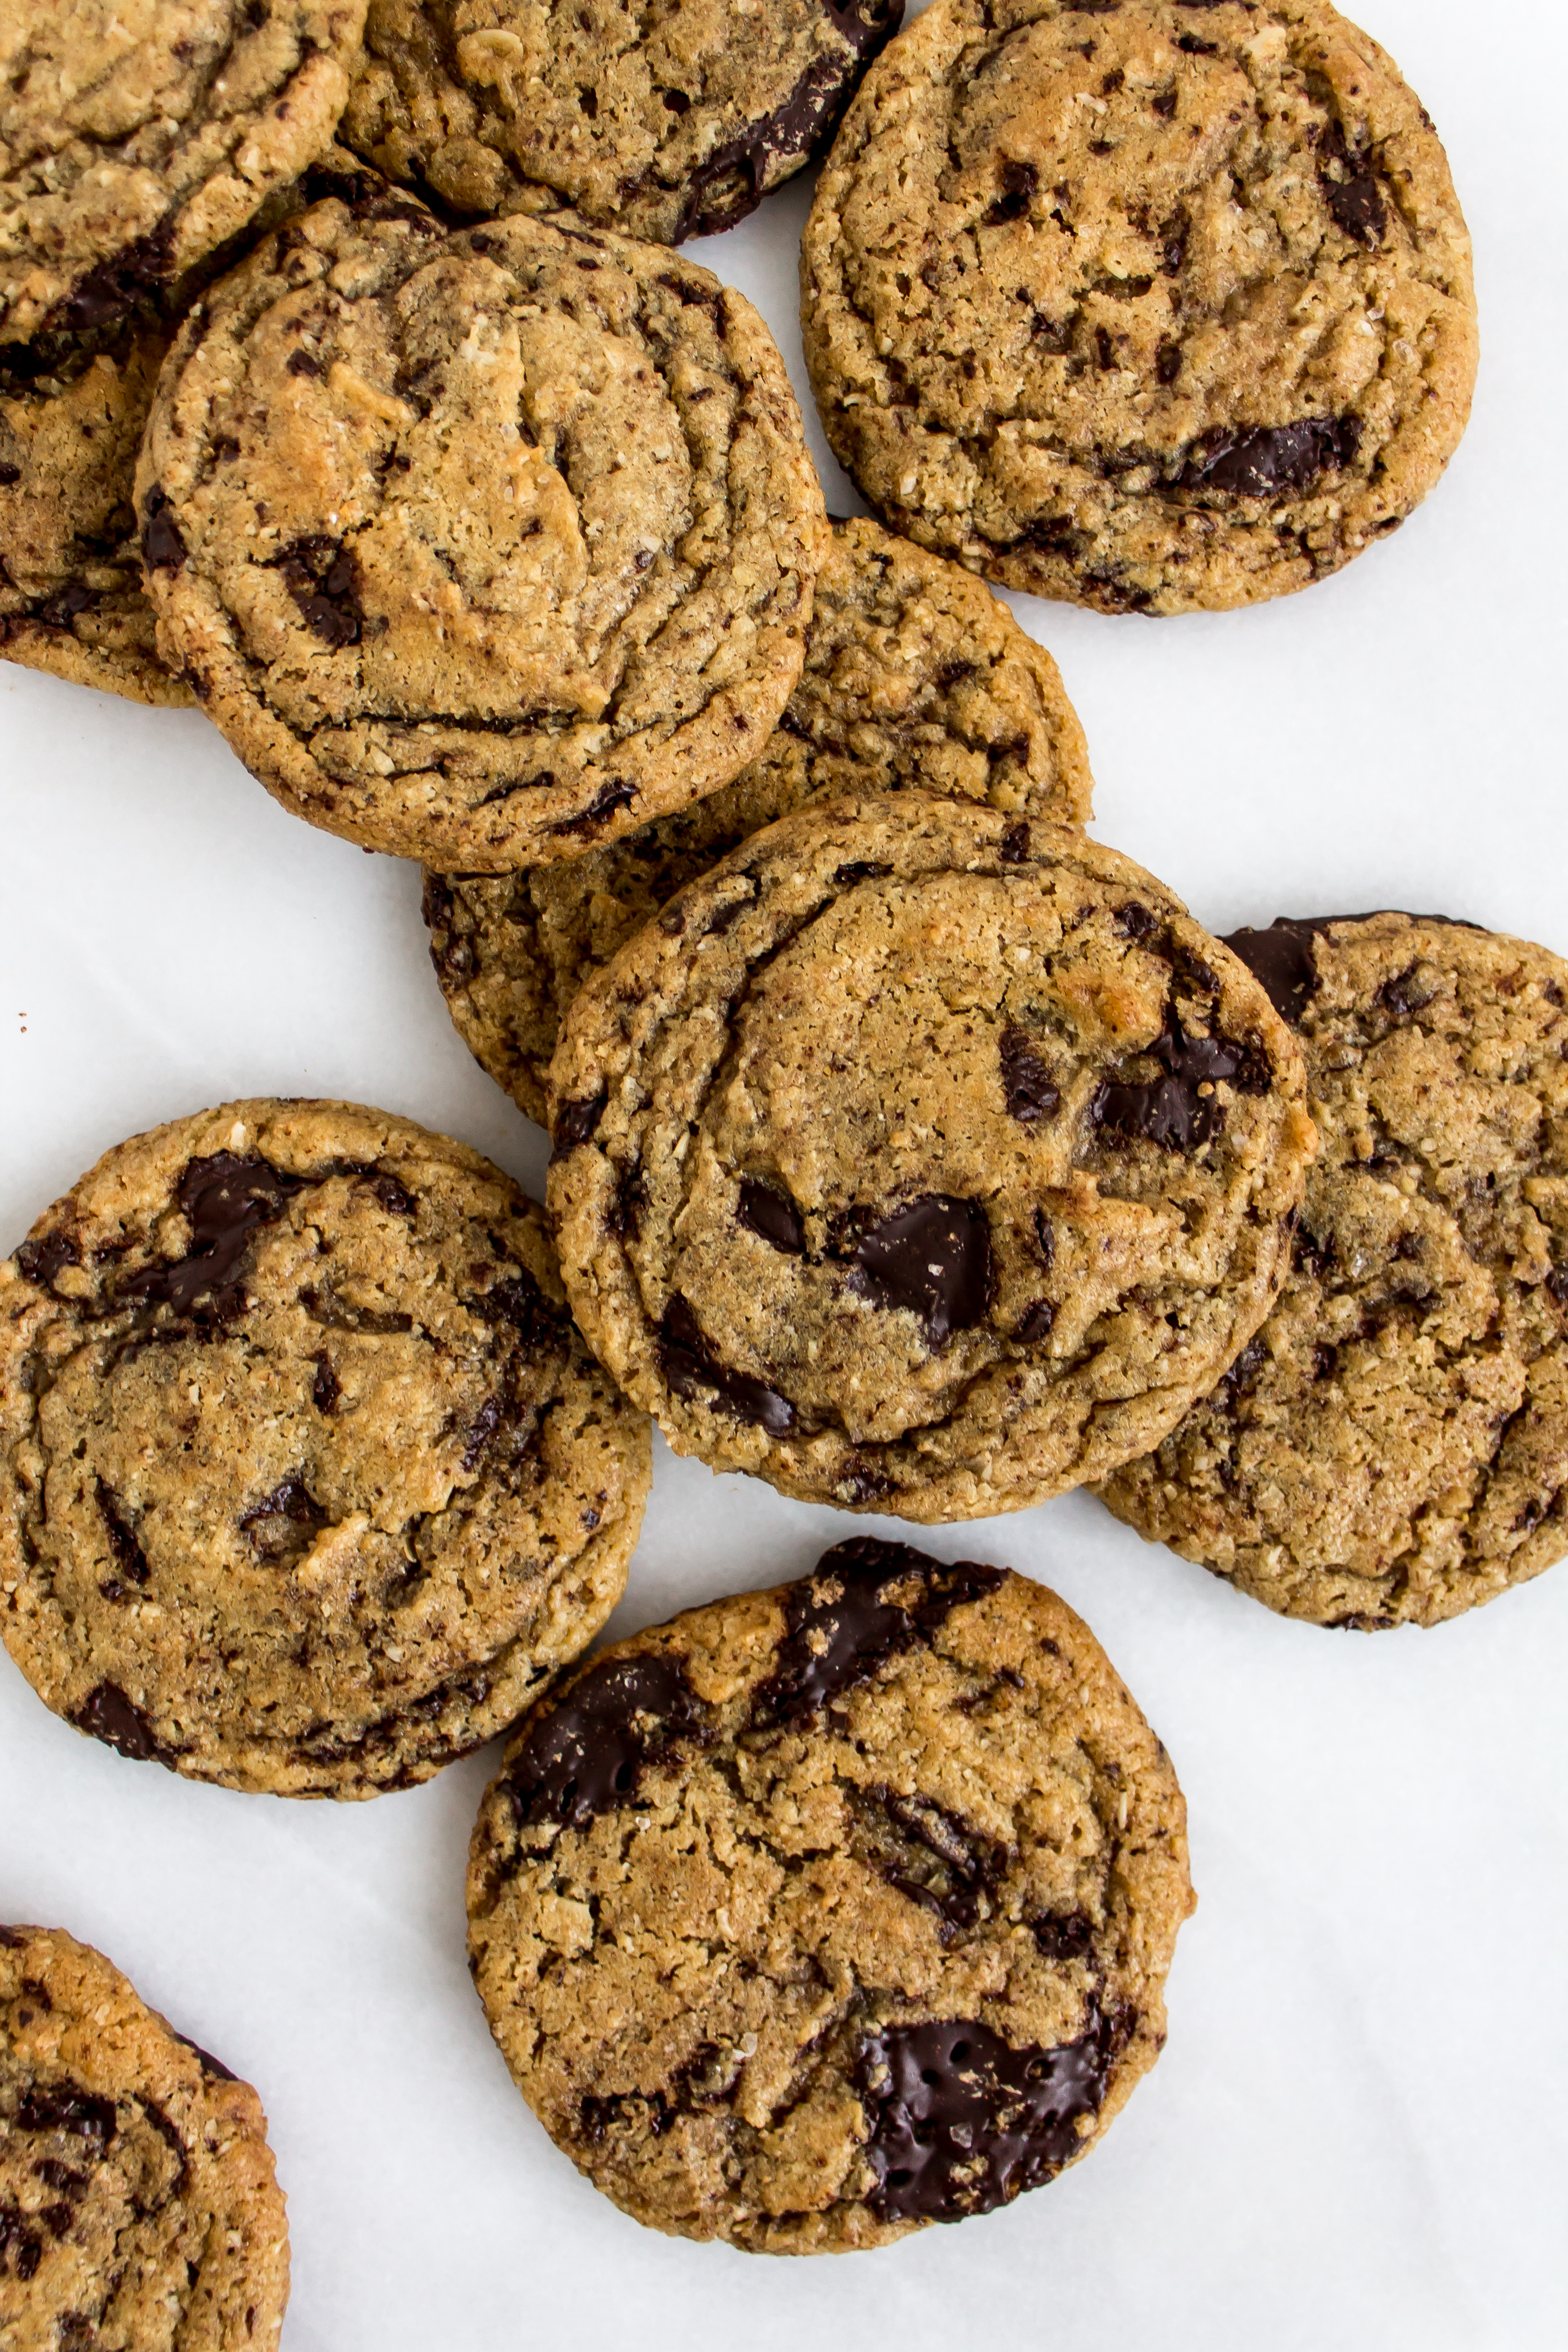 Spelt chocolate chip cookies are a unique twist on the classic chocolate chip cookie. With a nutty flavor, dark chocolate chunks, and that sweet and salty combination, they are a delicious treat. | www.passthecookies.com